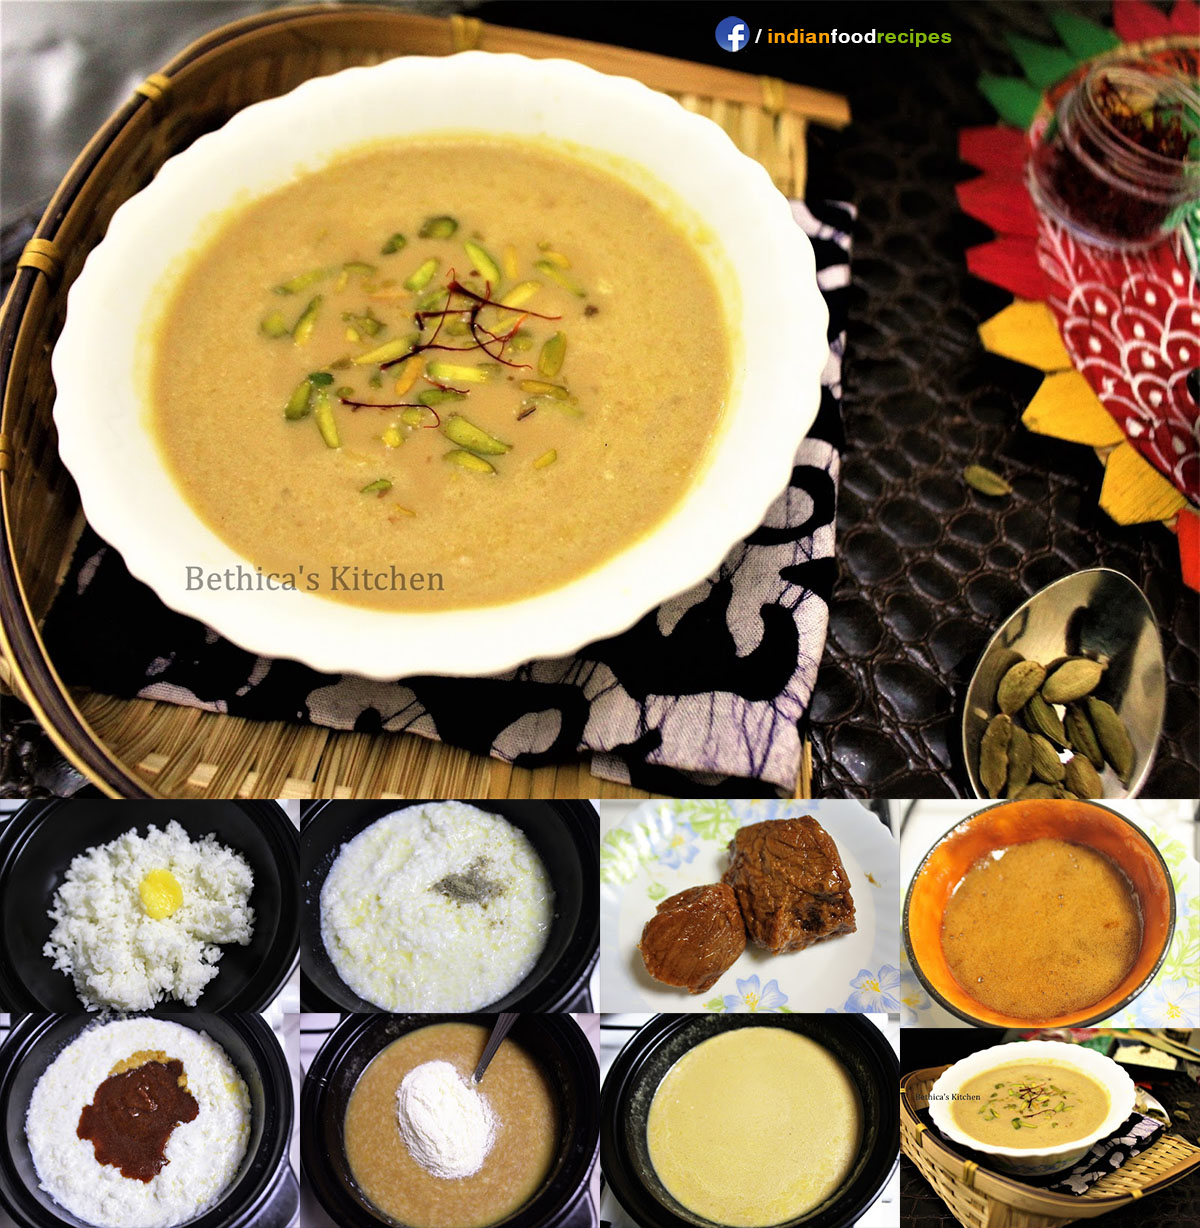 Bengali Kheer / Nolen Gurer Payesh (Rice Pudding with Date Palm Jaggery – Bengali Style) recipe step by step